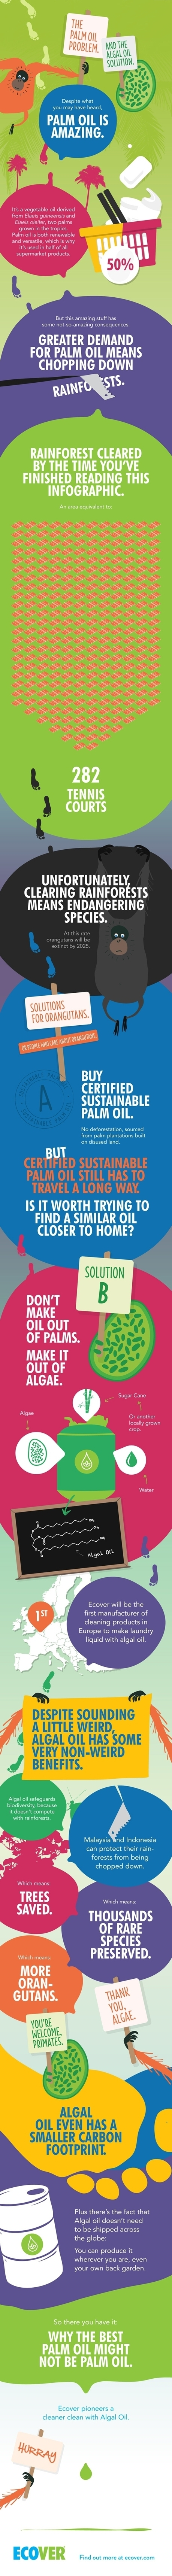 Algal Oil - the alternative to  Palm Oil Infographic | Organic & natural market | Scoop.it